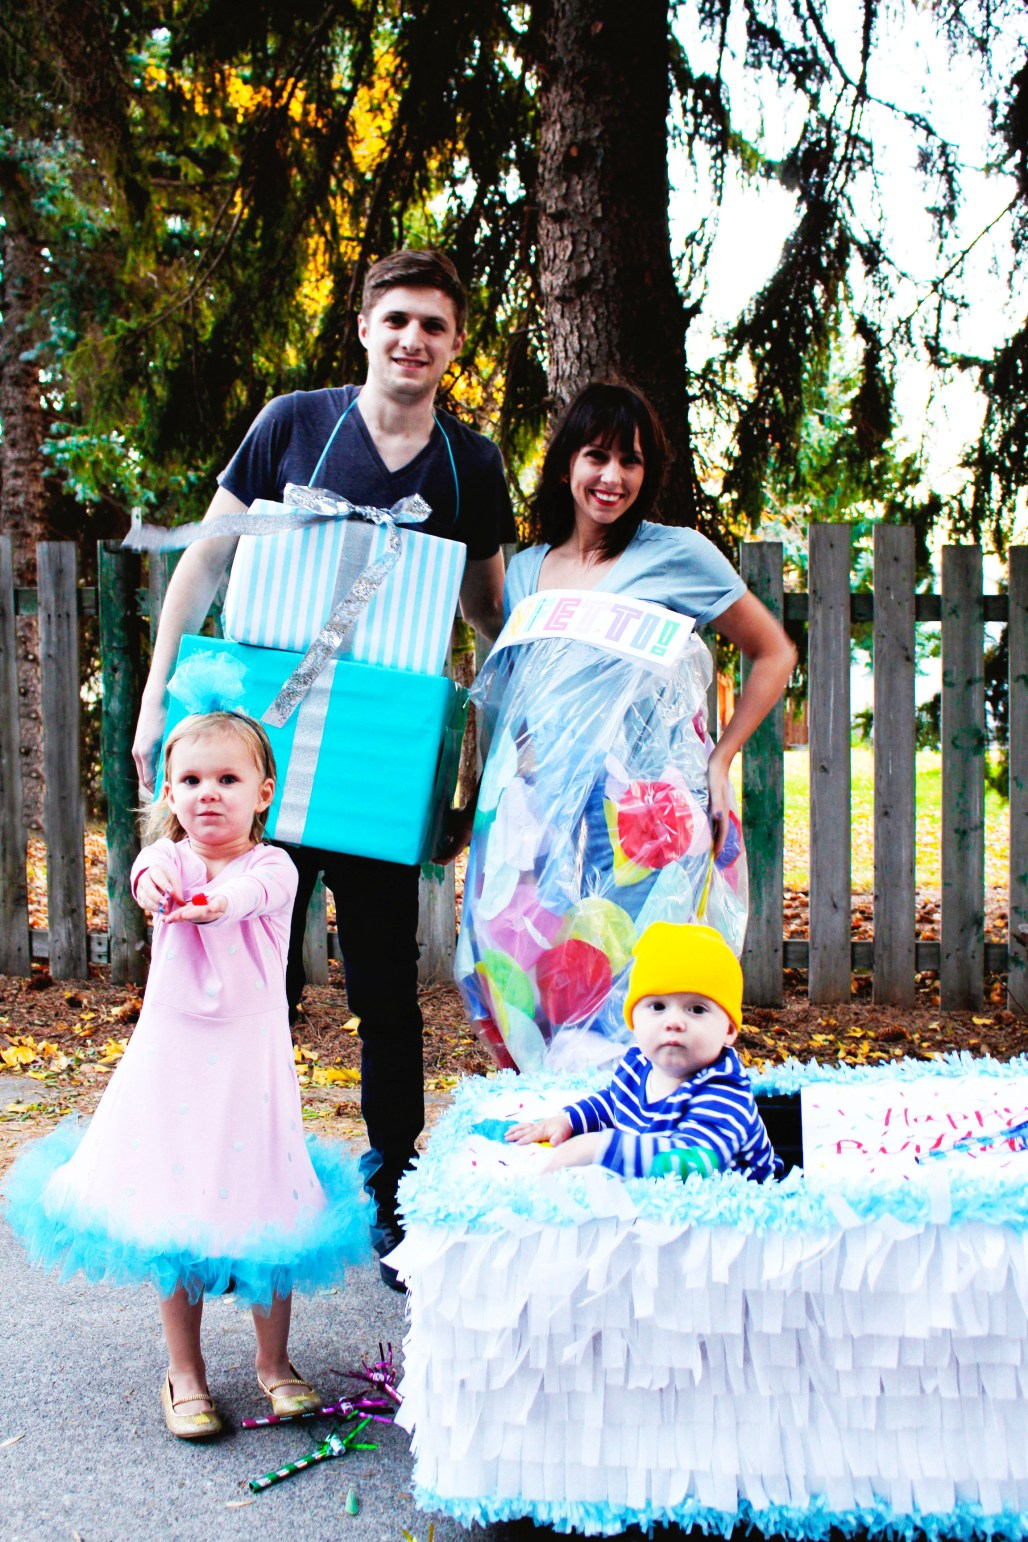 Birthday Party Family Costume ideas